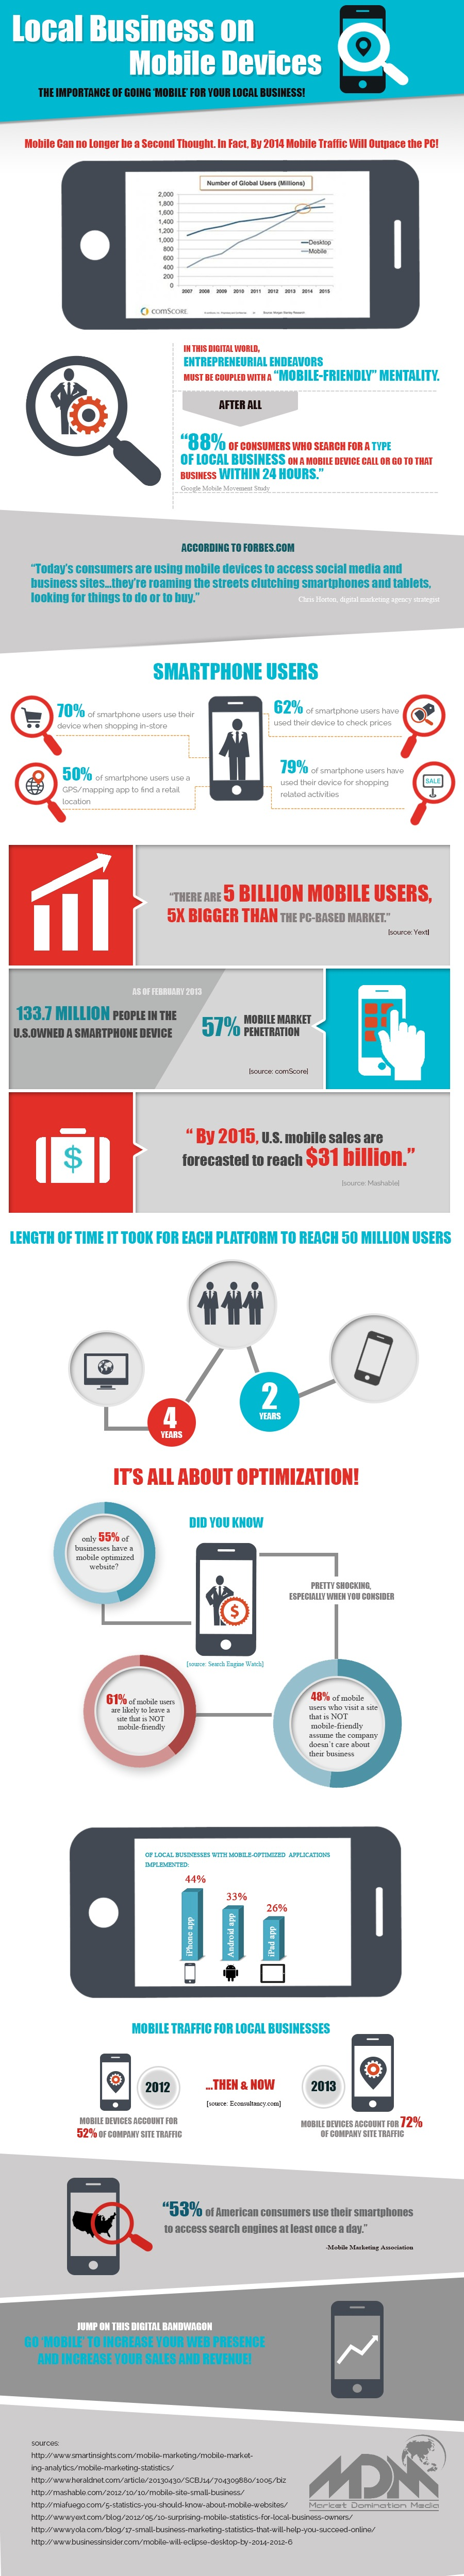 Why Go Mobile-Infographic